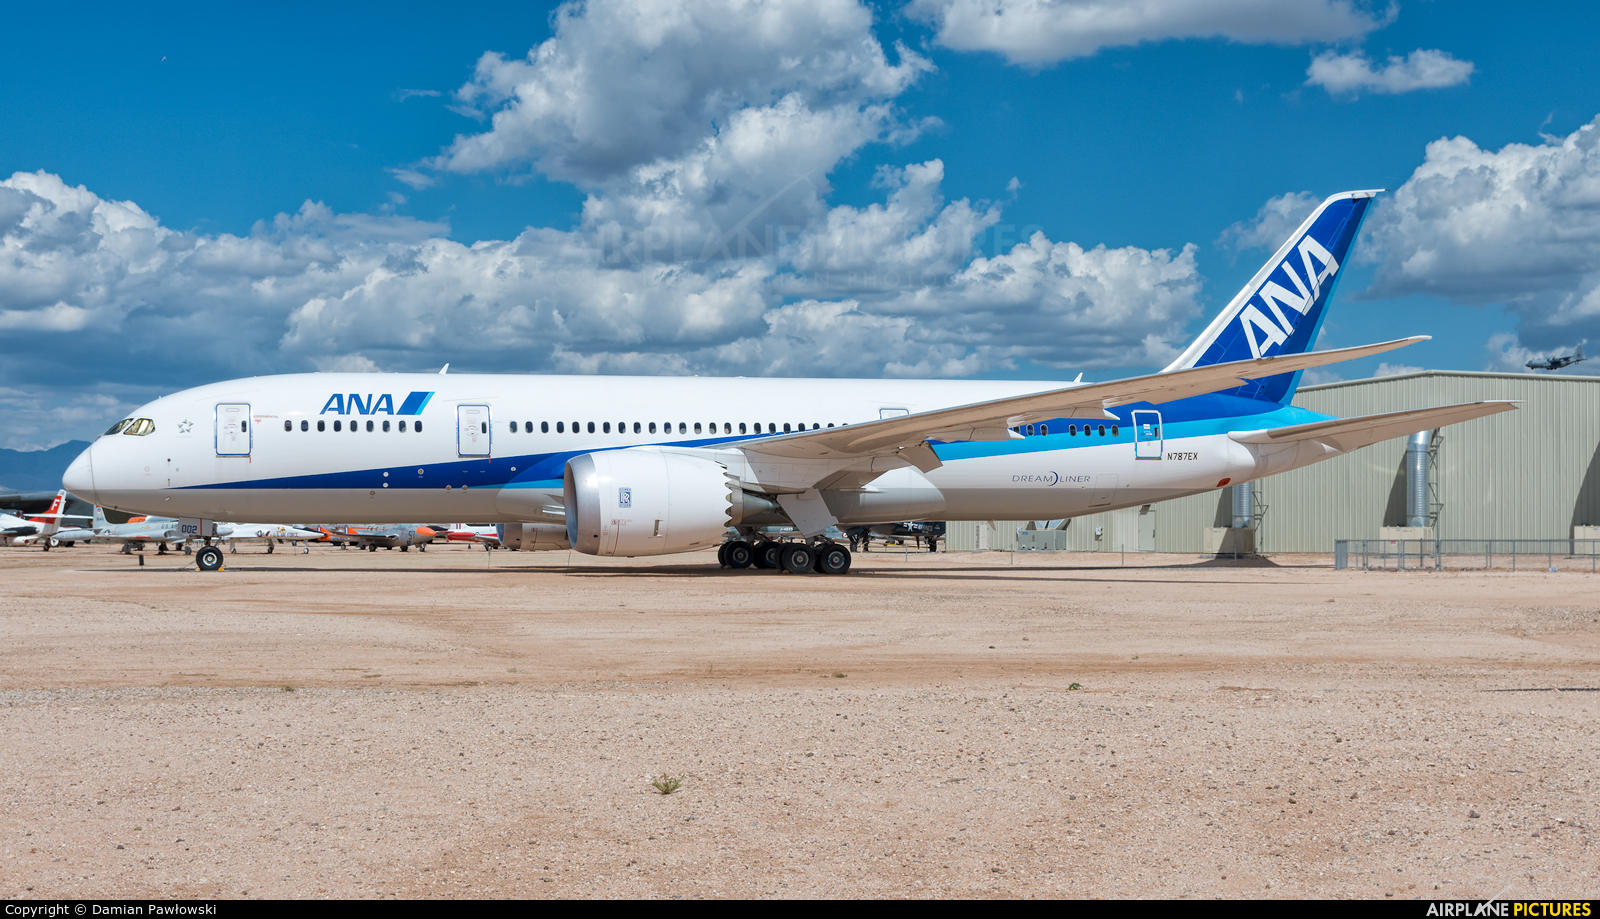 ANA - All Nippon Airways N787EX aircraft at Tucson - Pima Air & Space Museum